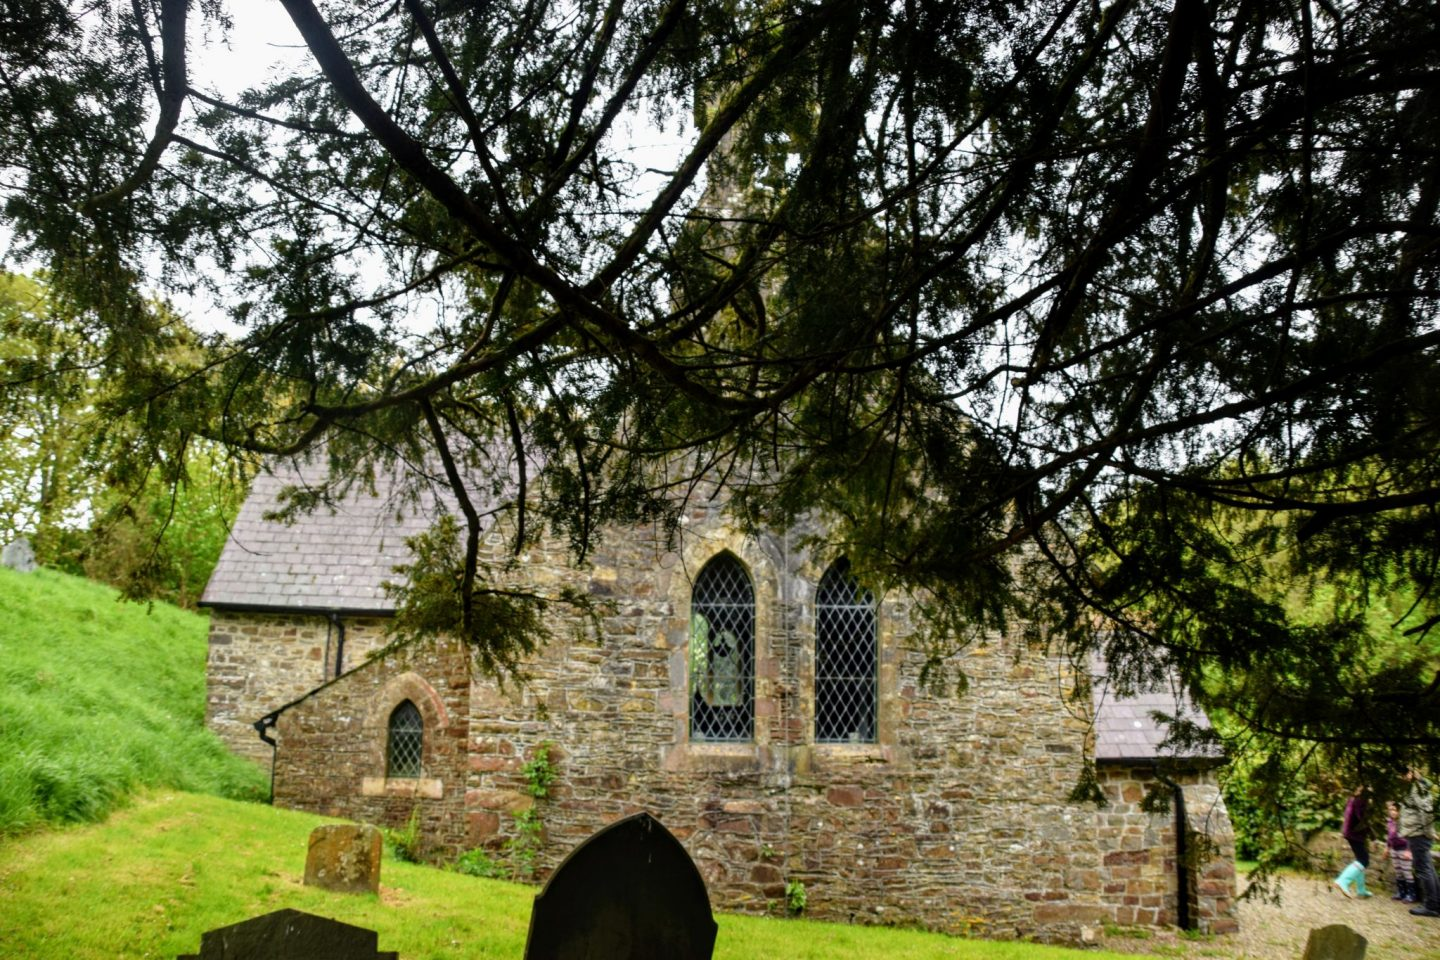 , St. Justinian's Church and The Oldest Yew Tree in Pembrokeshire